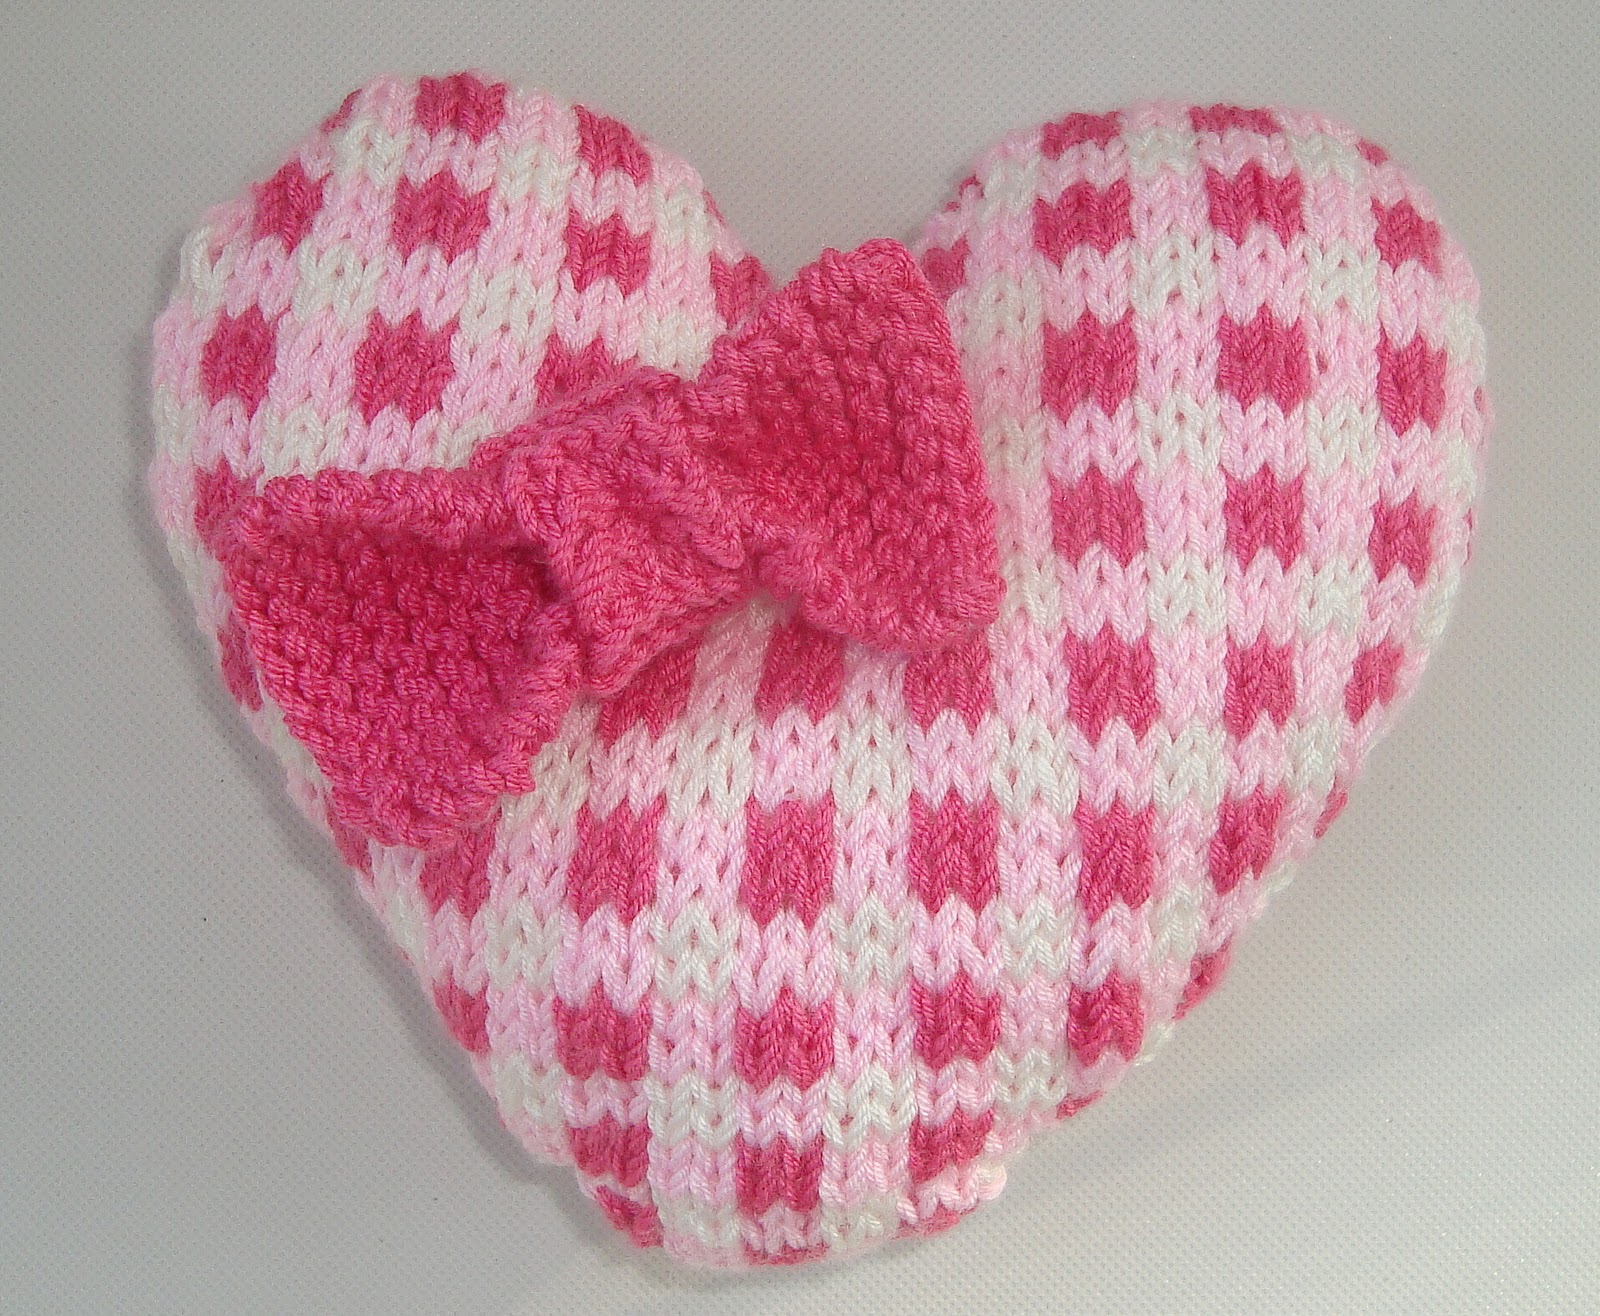 Knitting Heart Motif : Heart knitting pattern a